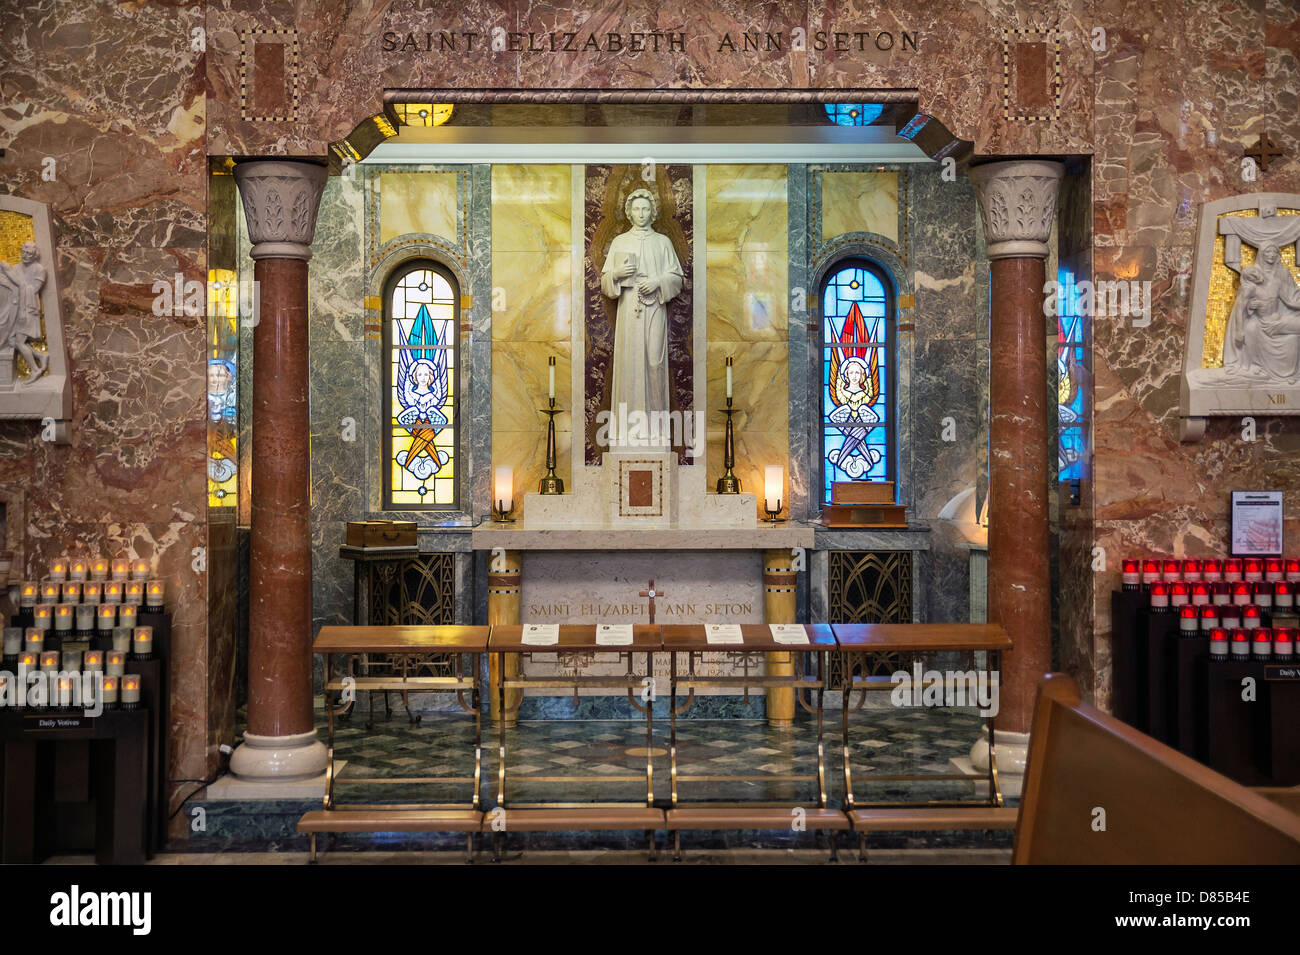 Altar of Relics at the Basilica of the National Shrine of St. Elizabeth Ann Seton, Emmitsburg, Maryland, USA - Stock Image